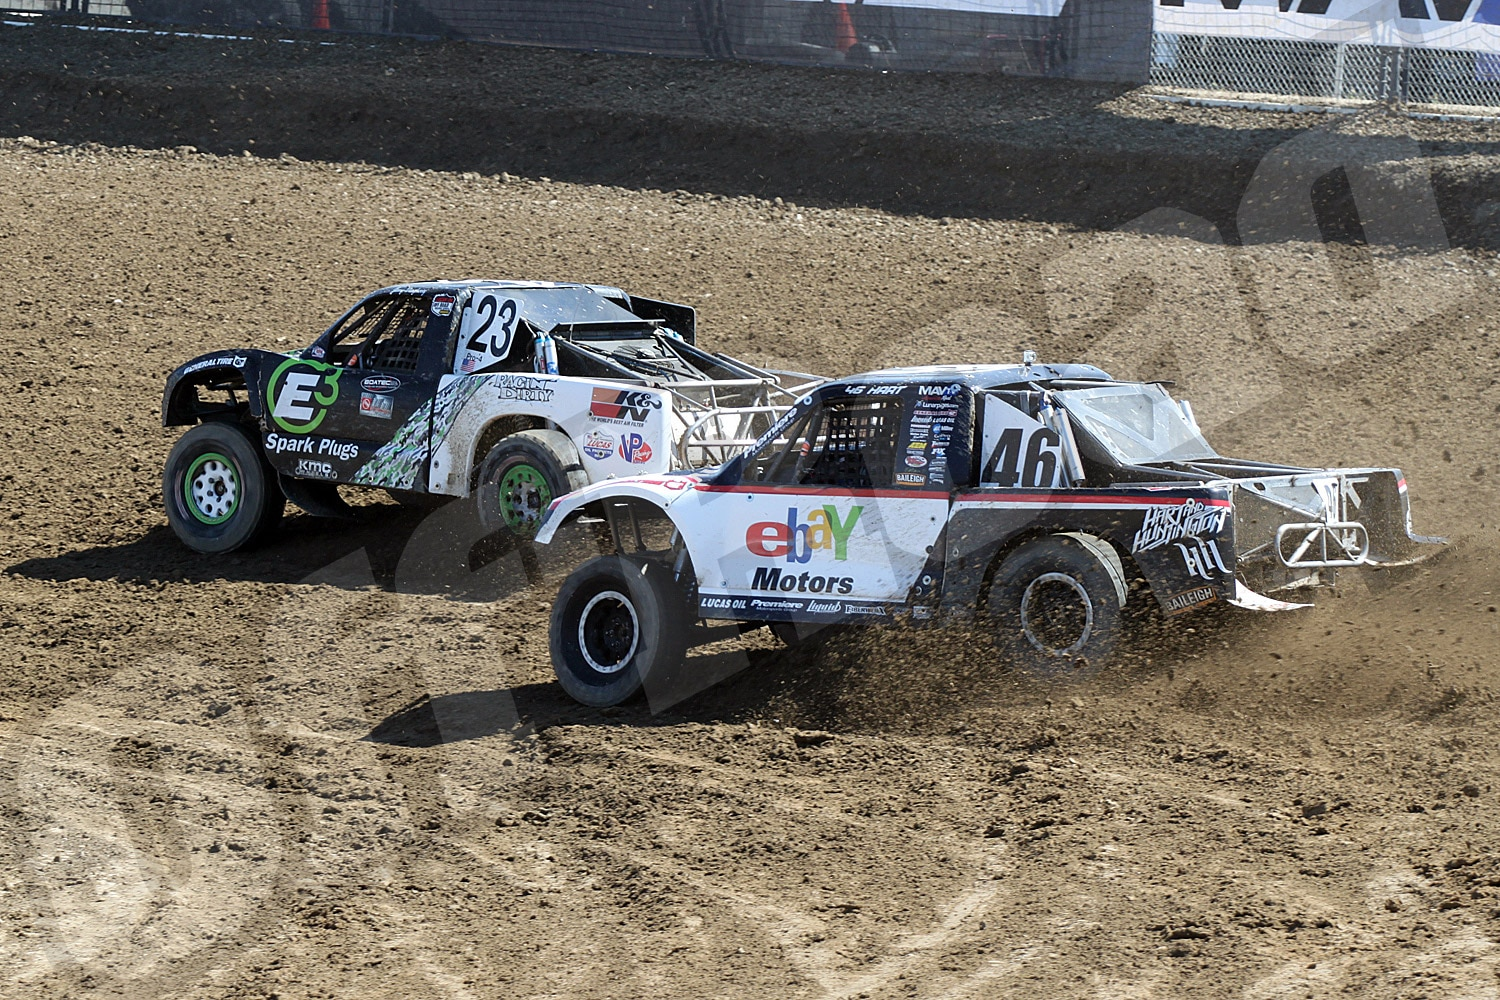 050312or 7557+2012 lucas oil off road racing series round 3+pro 4